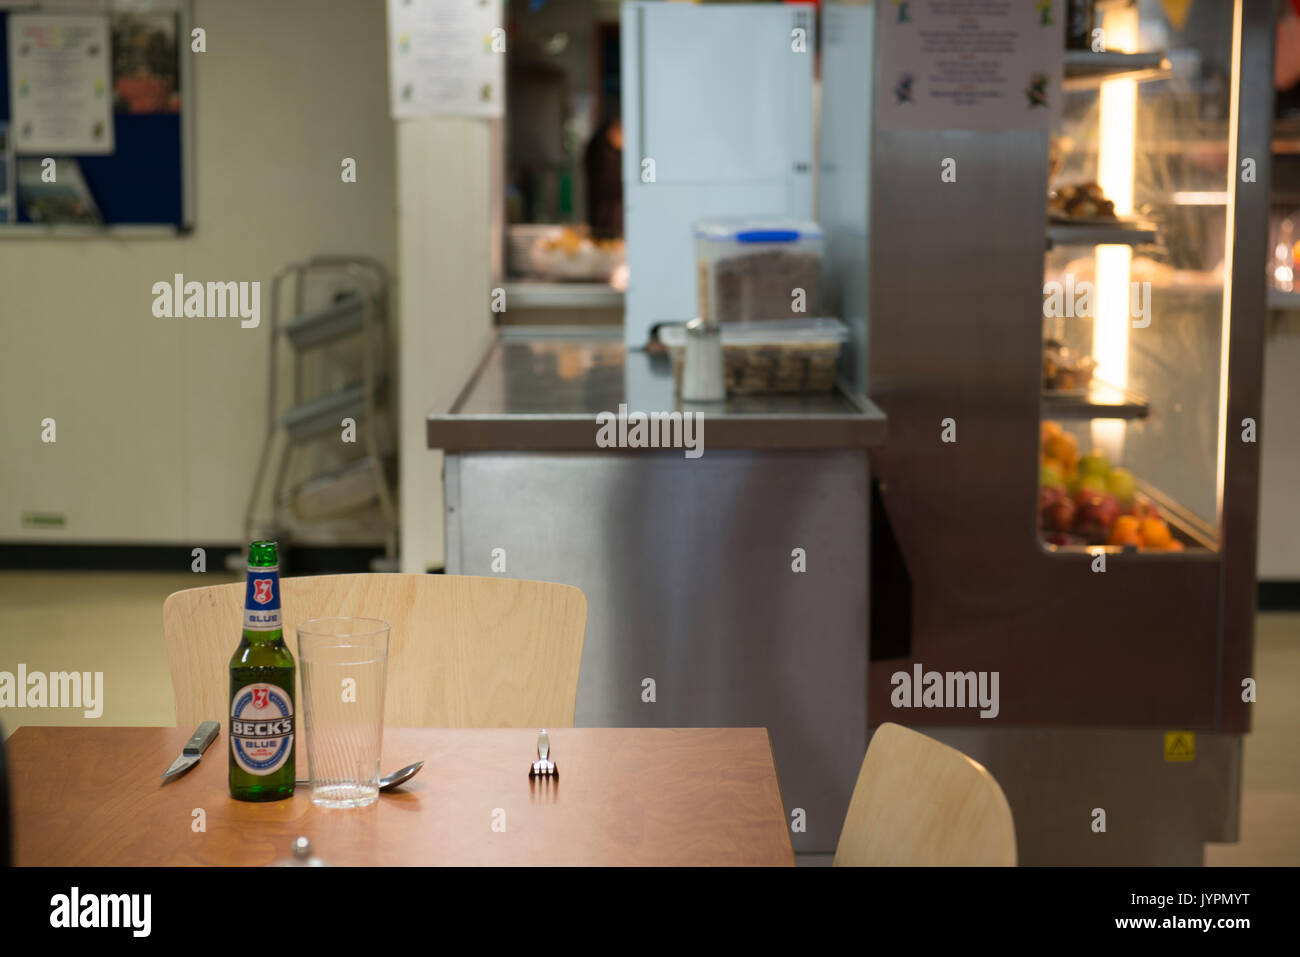 A dinner place setting, with a bottle of backs blue non-alcoholic larger. On an oil and gas rig, in the North Sea. credit: LEE RAMSDEN / ALAMY - Stock Image